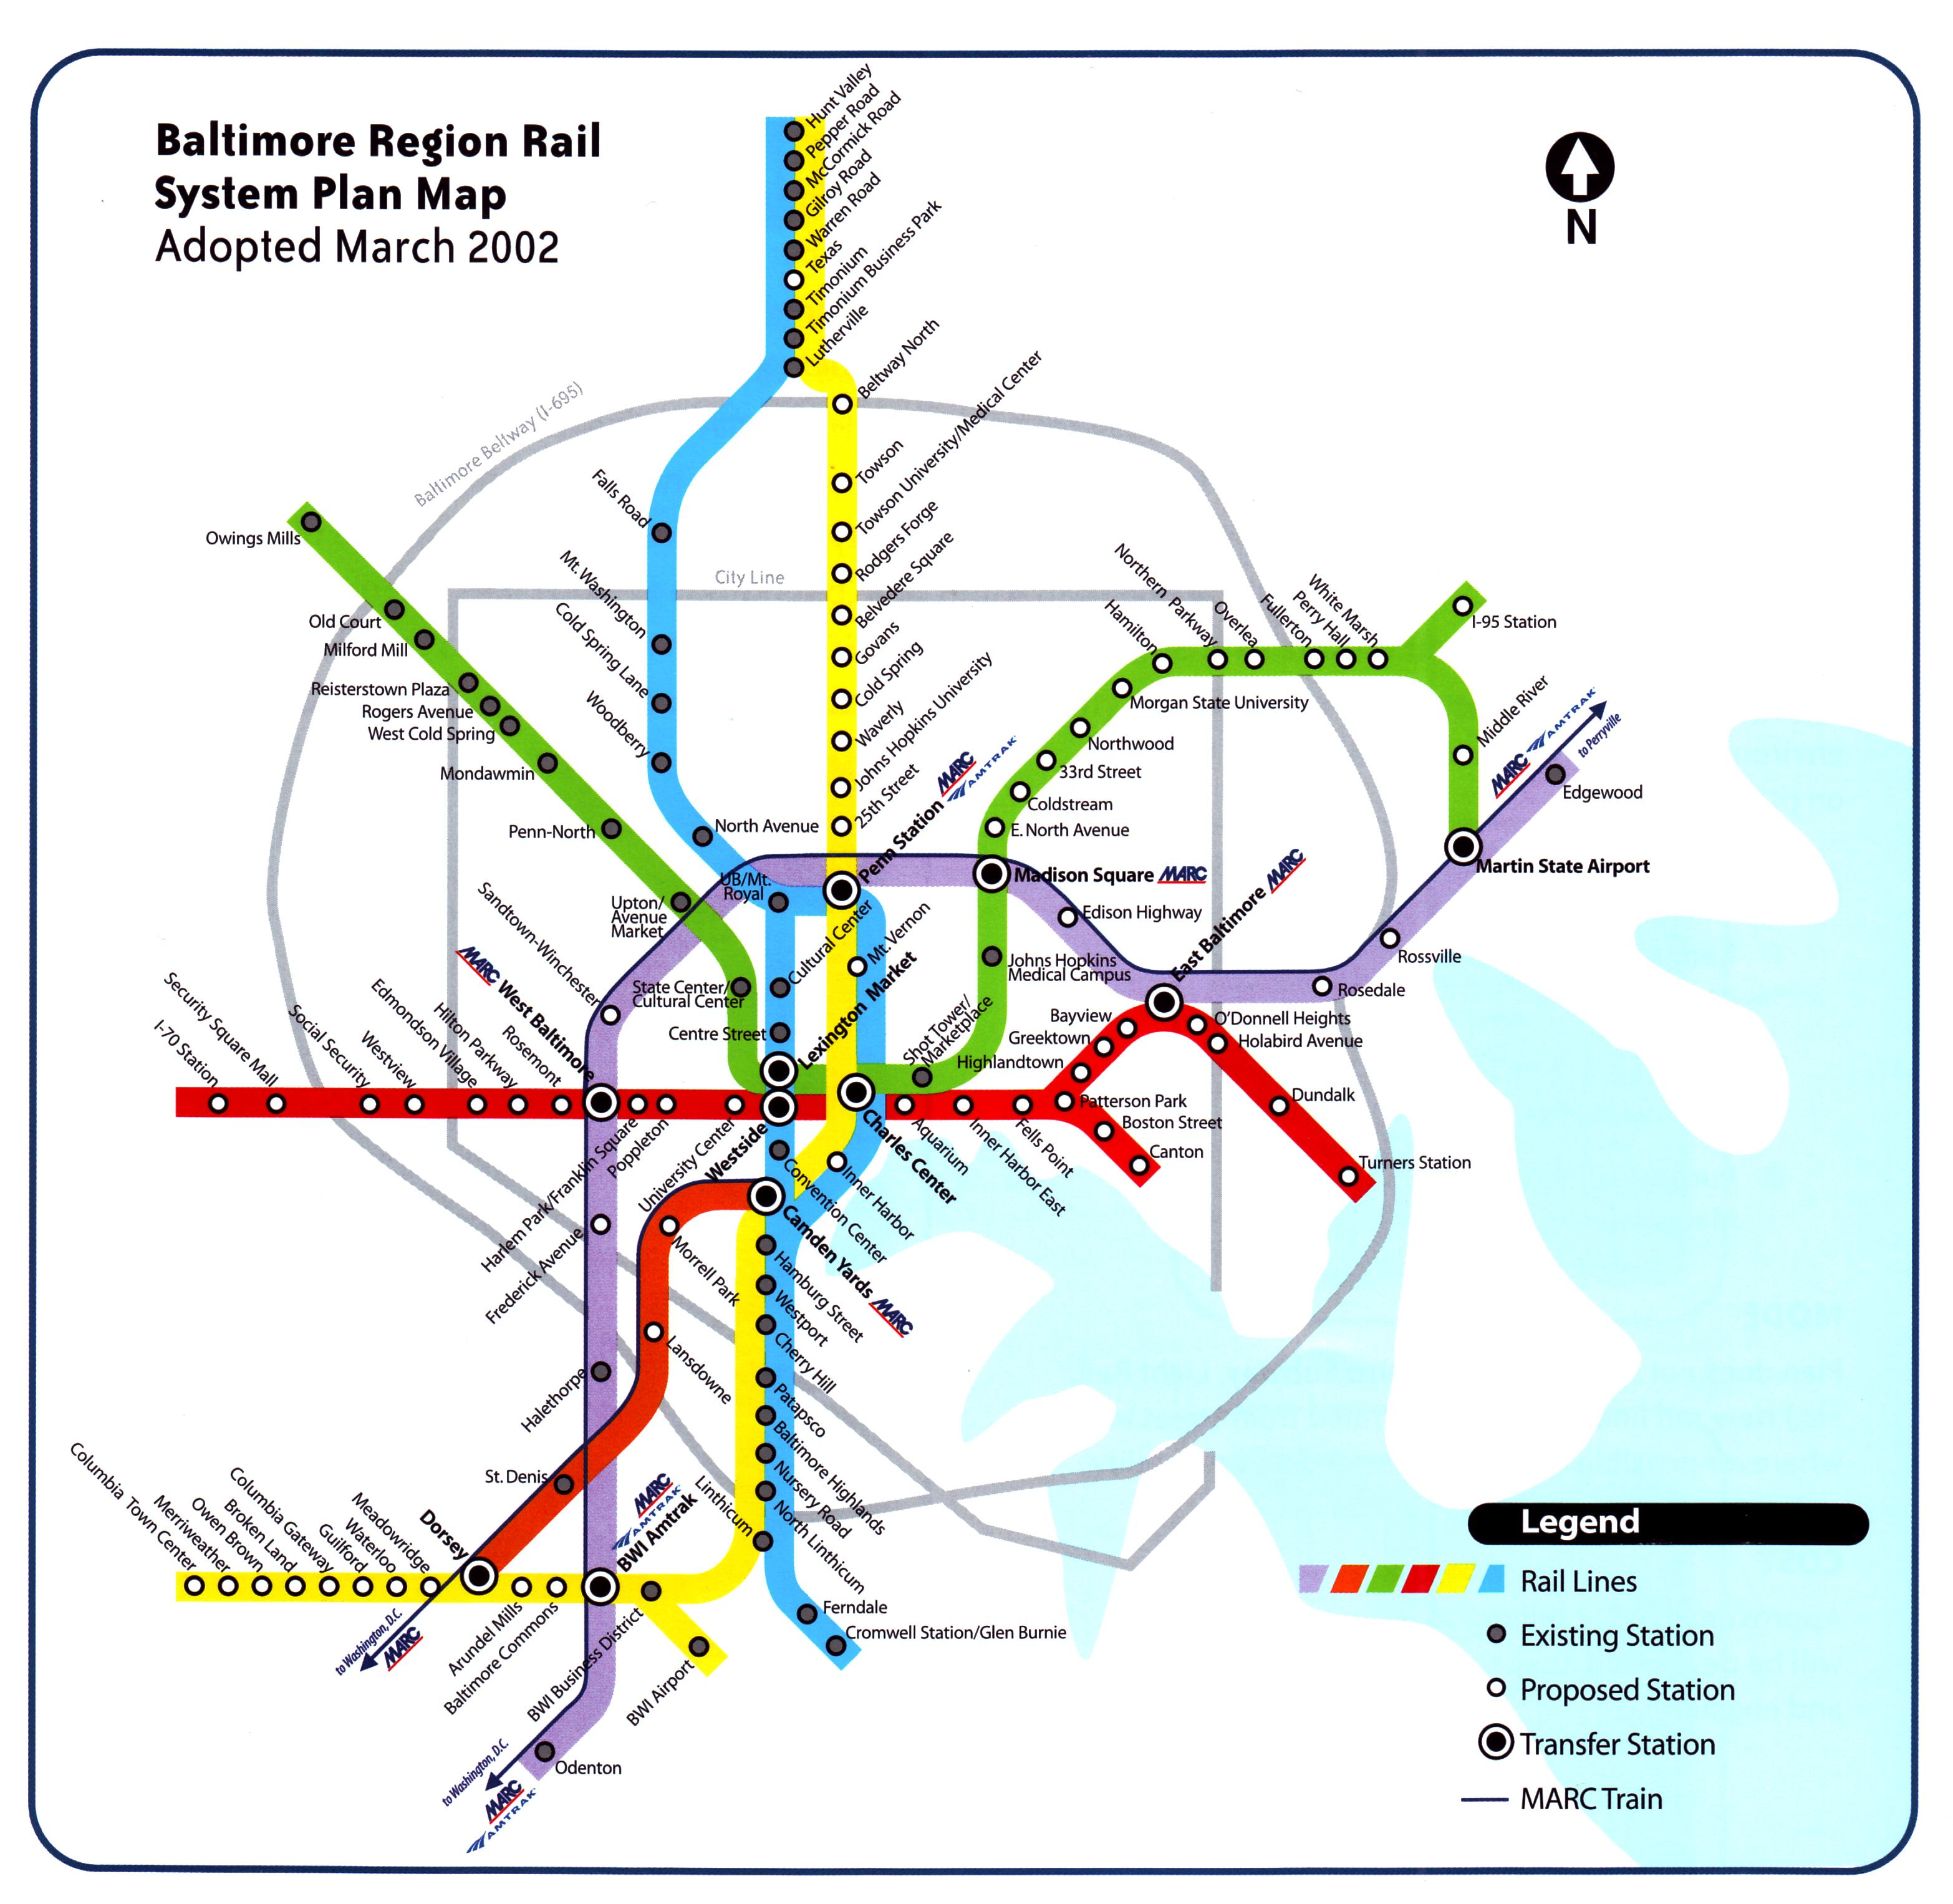 Baltimore%20Region%20Rail%20System%20Plan%20Map Map Of The Subway System Maryland on train map of maryland, tourist map of maryland, blank map of maryland,